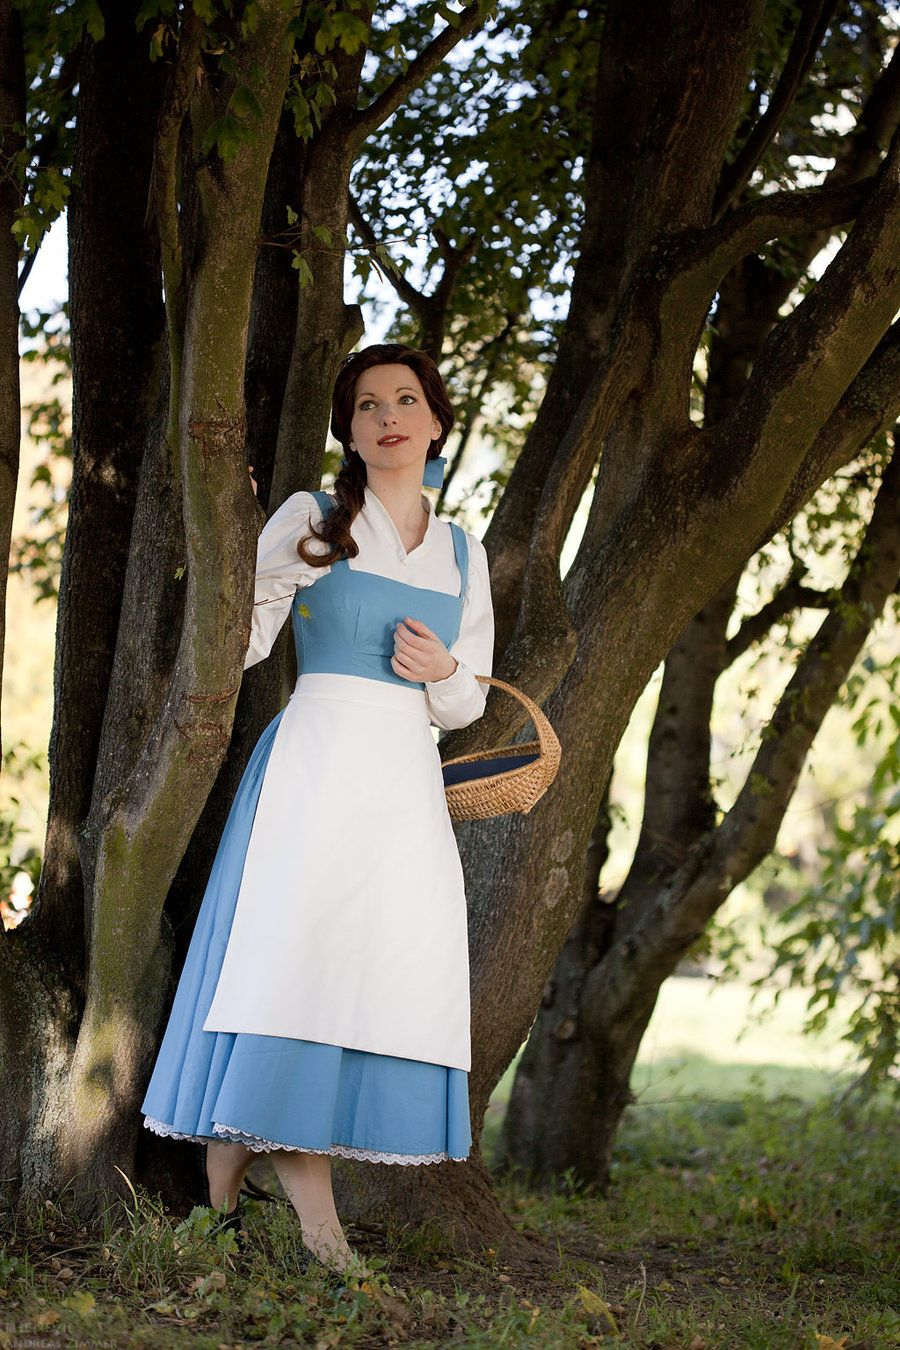 Beautiful Belle cosplay from Beauty and the Beast. 10